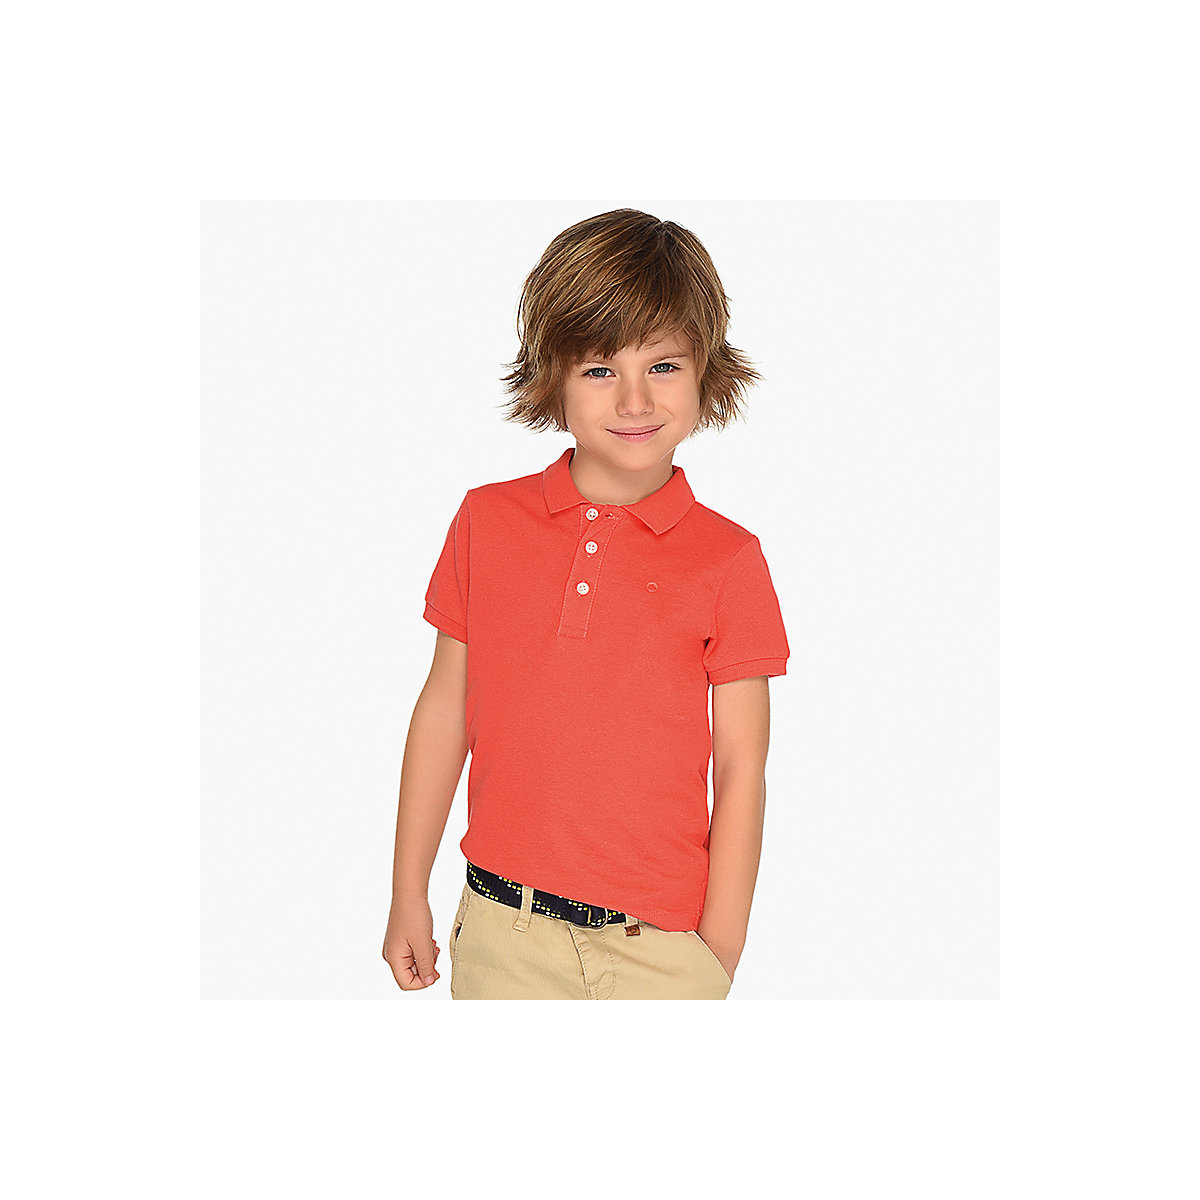 MAYORAL Polo Shirts 10682896 children clothing t-shirt shirt the print for boys